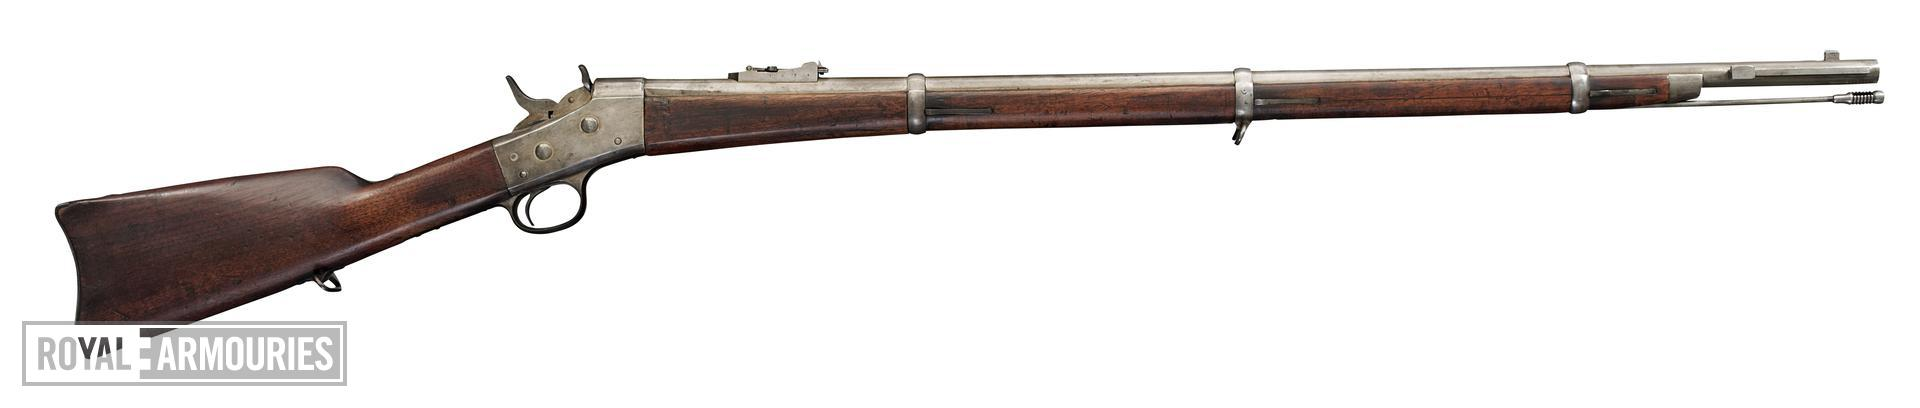 Centrefire breech-loading rifle - Remington With rolling block action